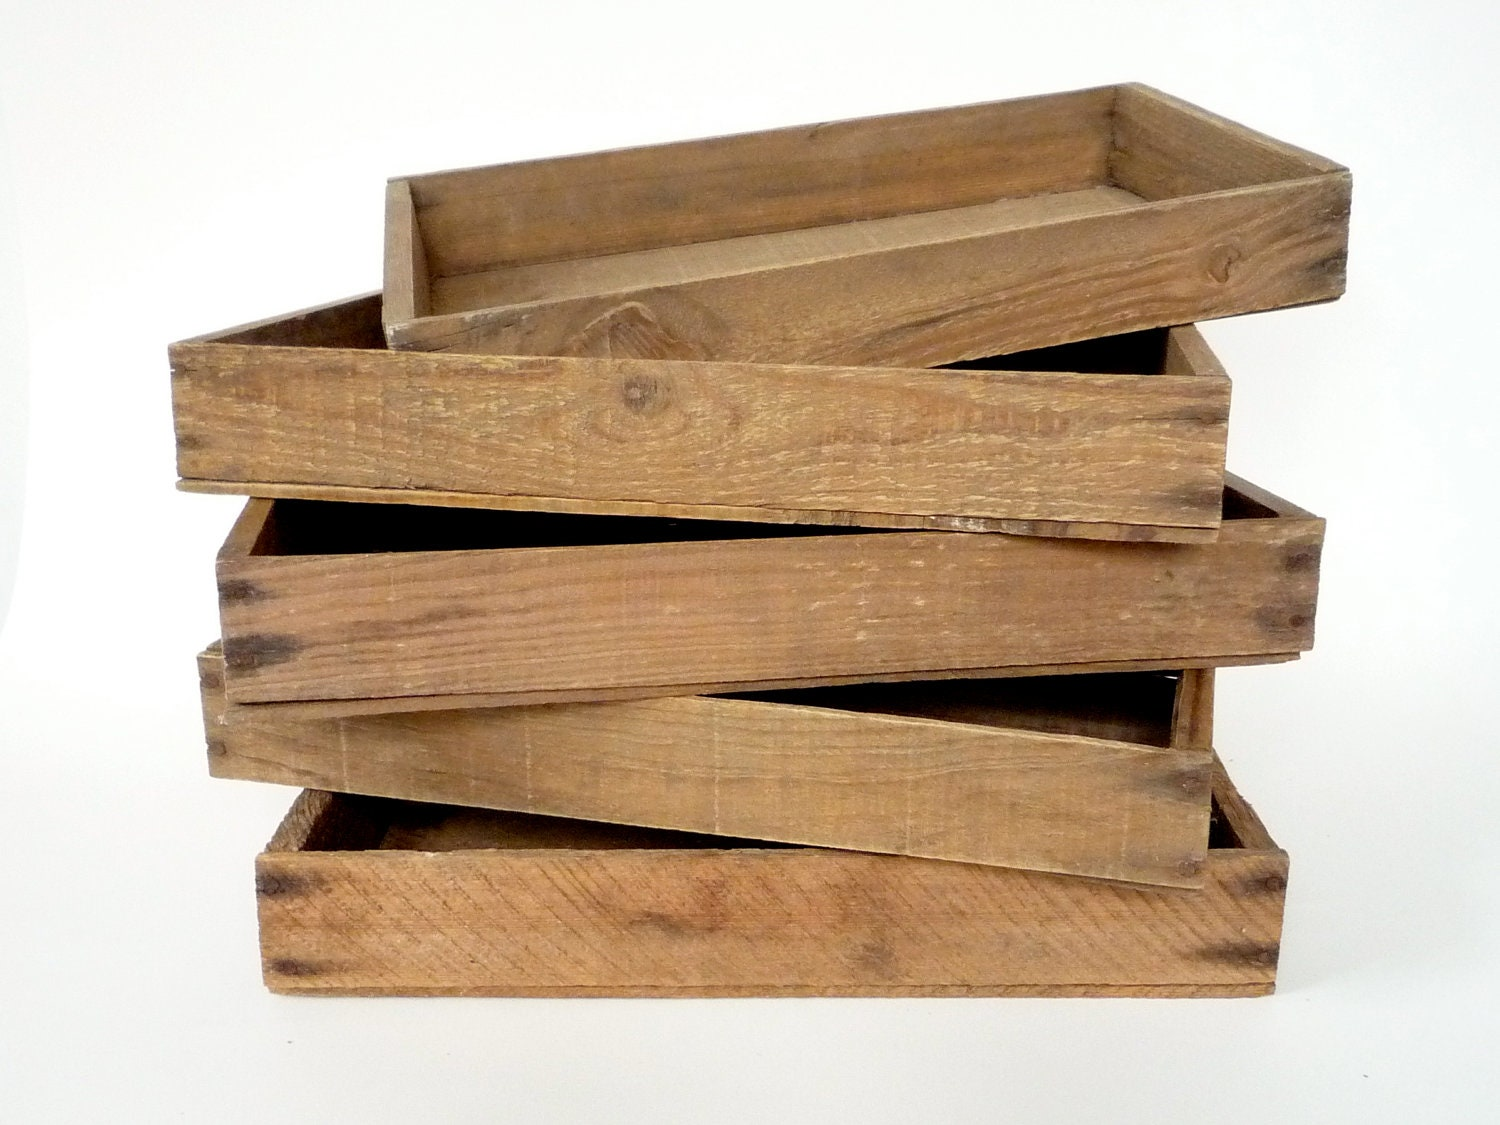 Wooden fruit crate vintage rustic tray by crolandco on etsy for Wooden fruit crates